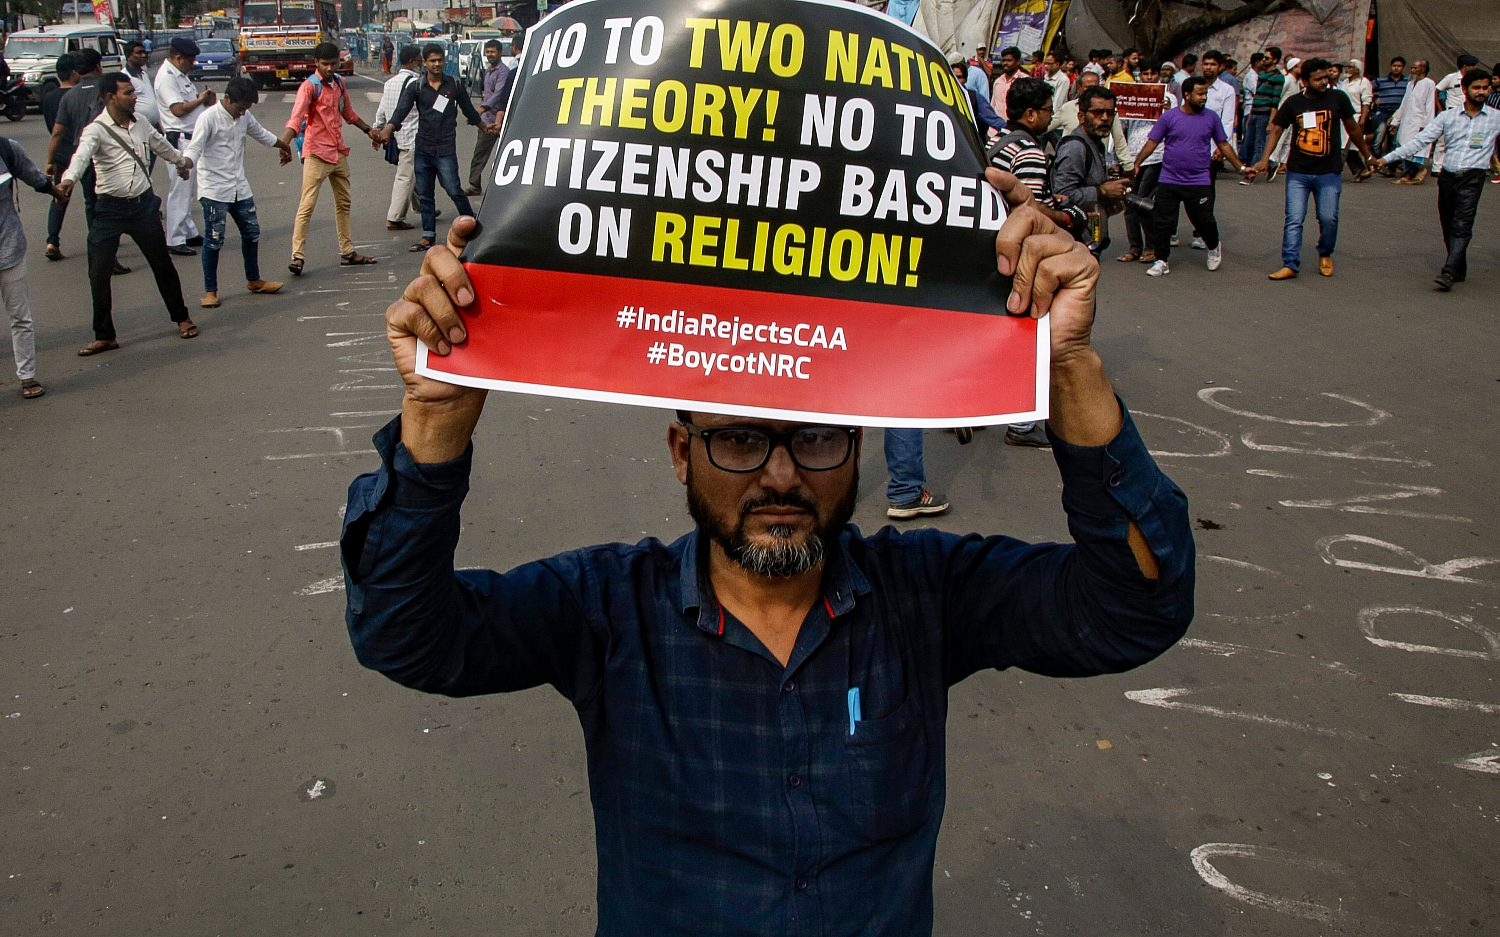 U.S. calls out India for persecution